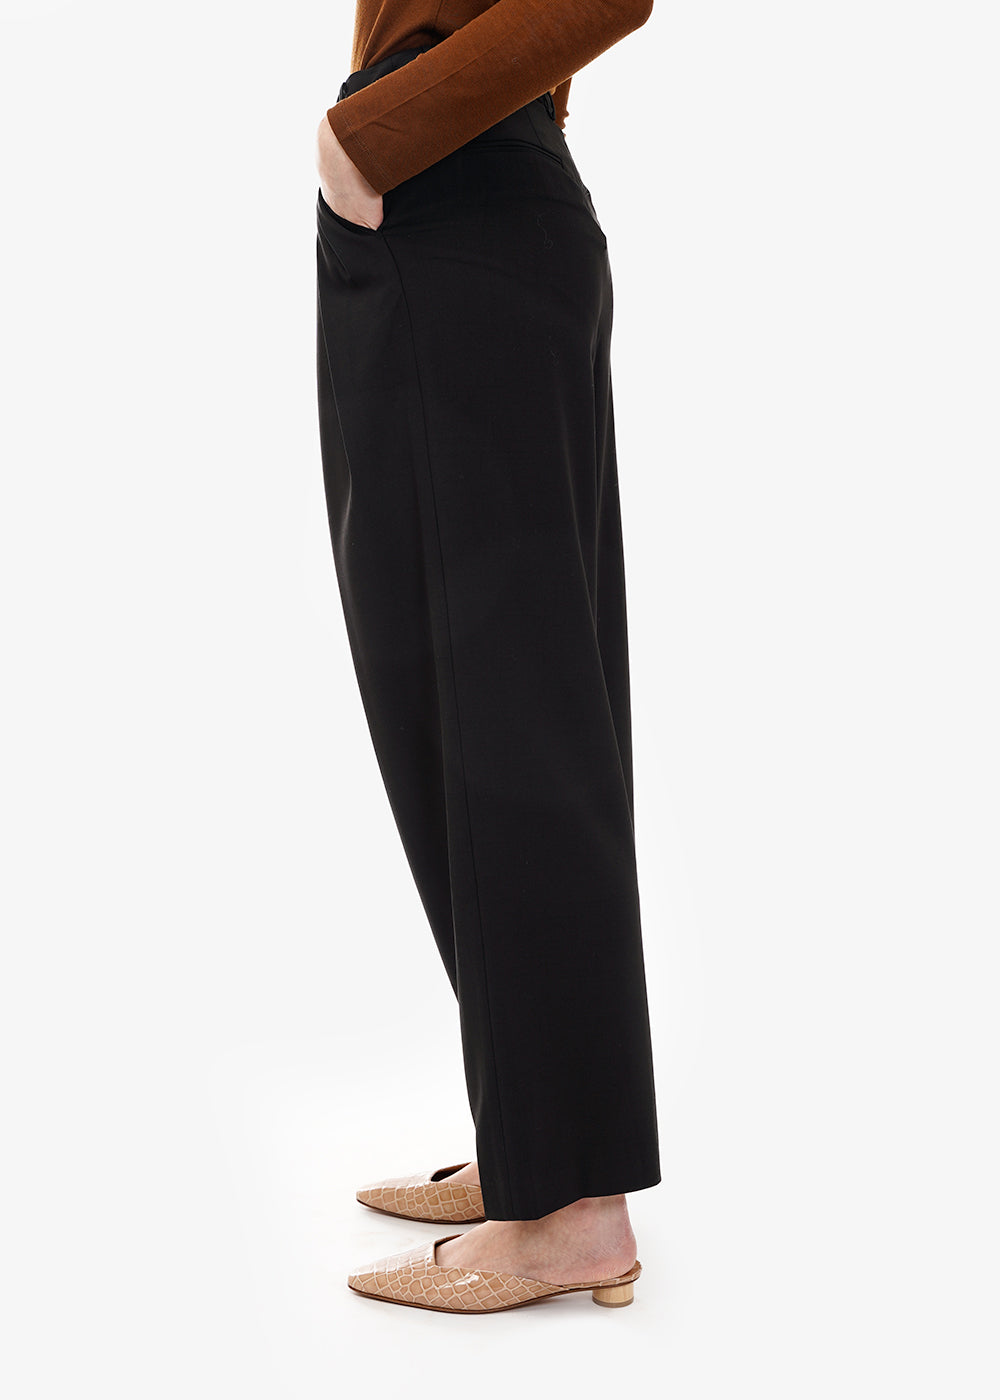 WNDERKAMMER Zigzag Wide Trousers — Shop sustainable fashion and slow fashion at New Classics Studios